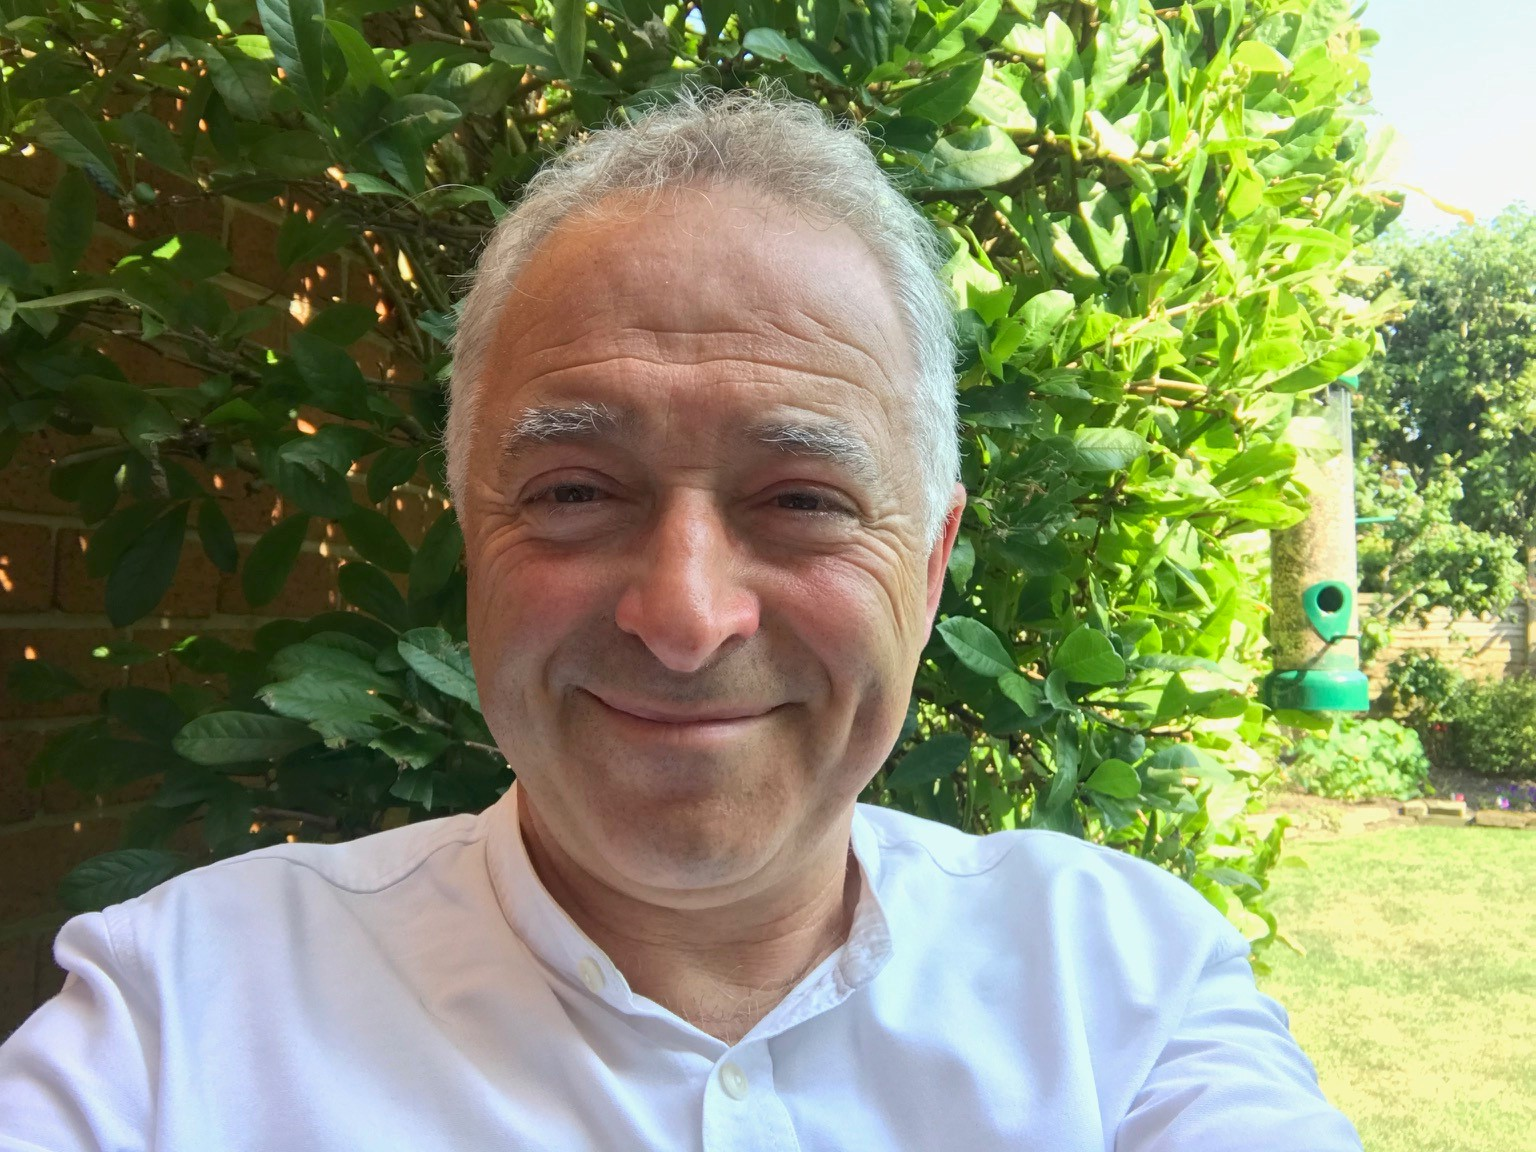 Children's Author, Frank Cottrell Boyce joins CAFOD's Summer of Hope